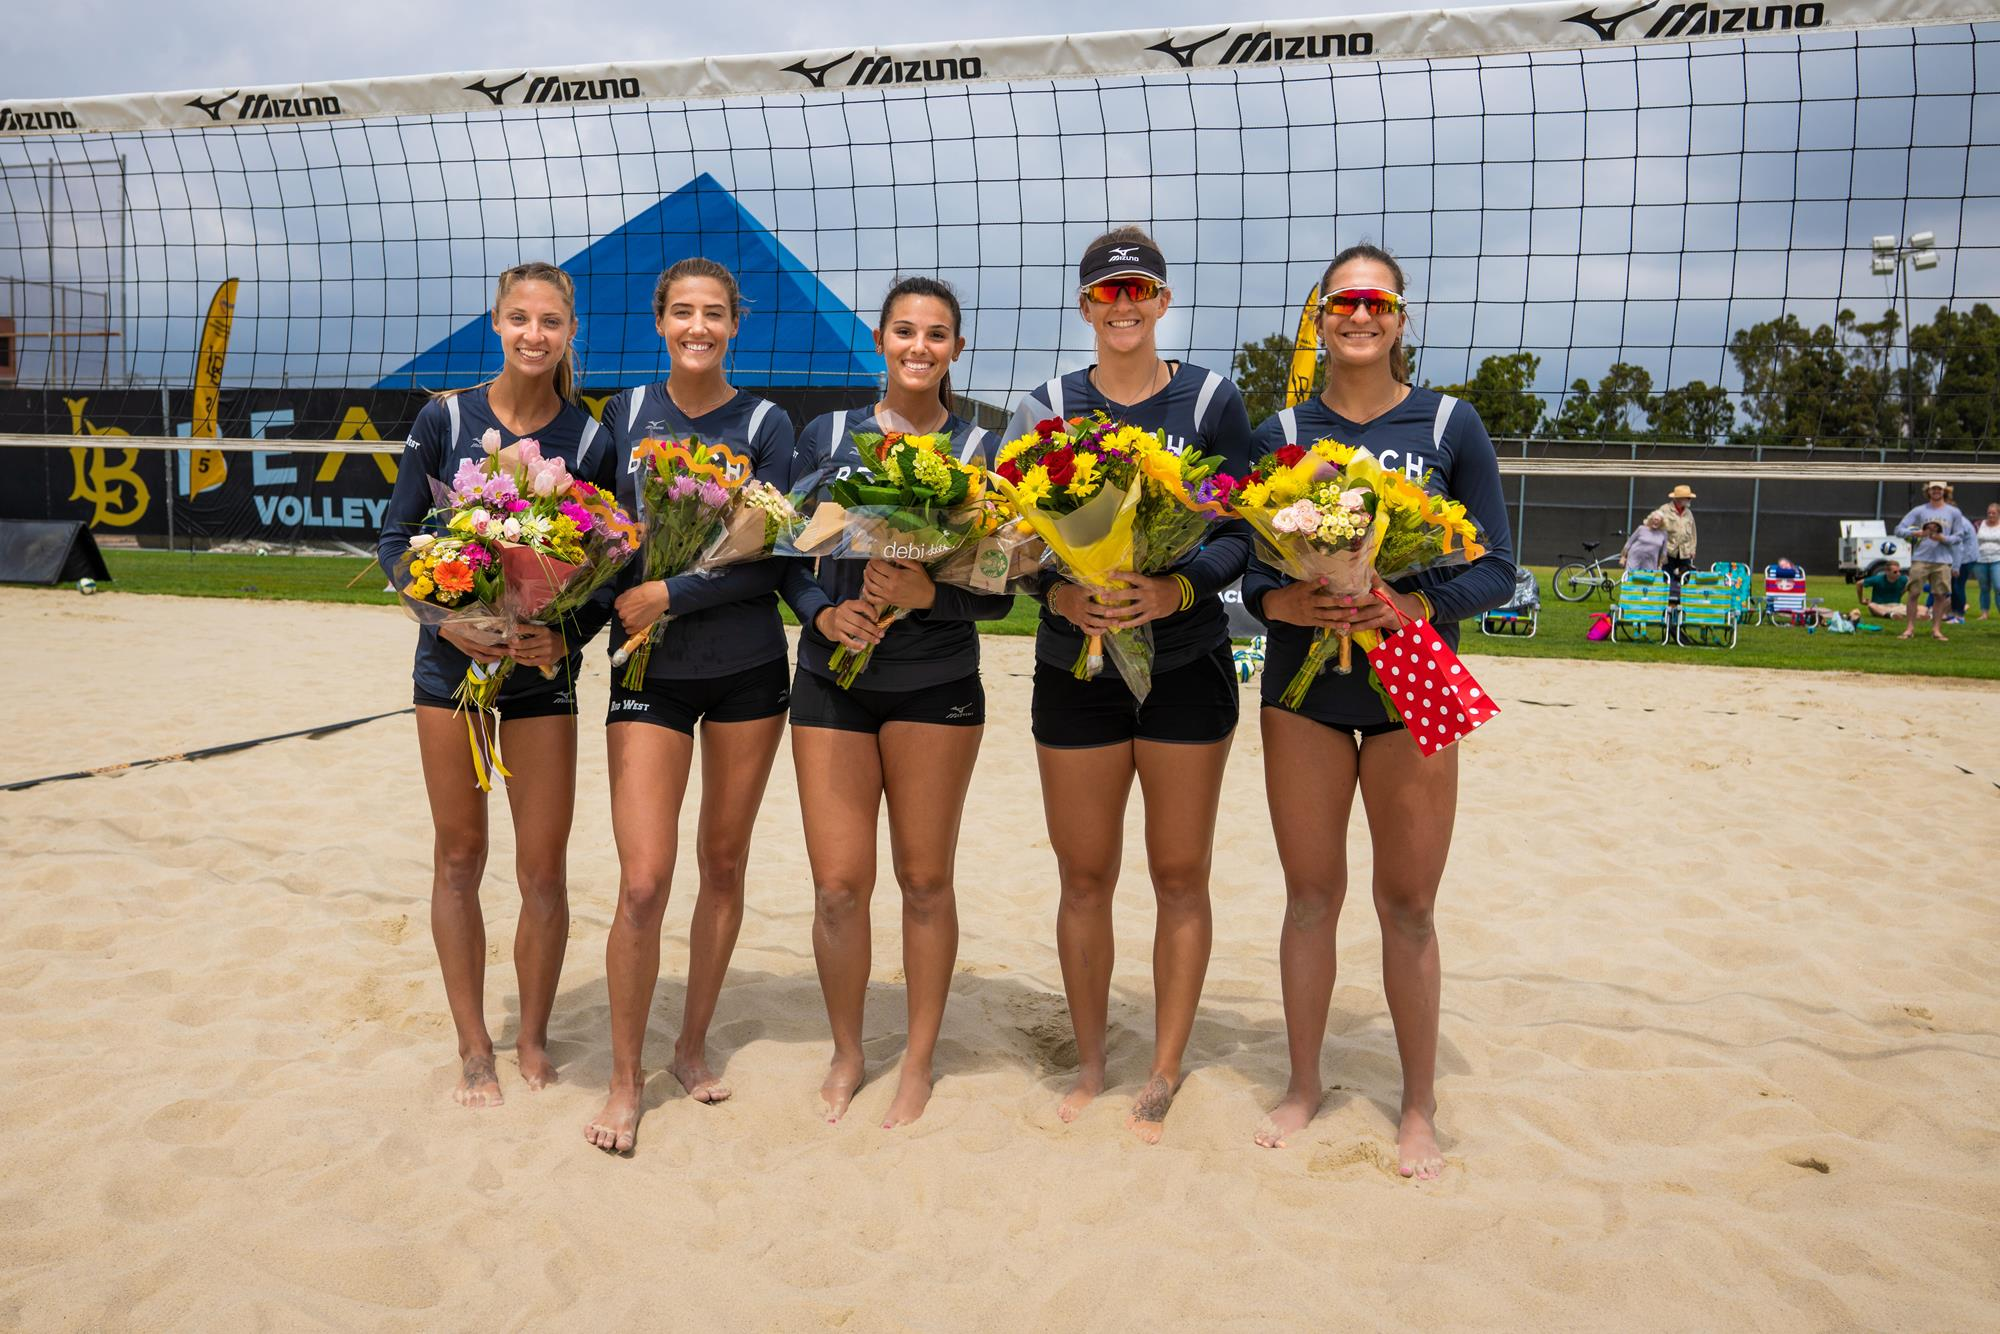 mizuno long beach volleyball club instagram promo store